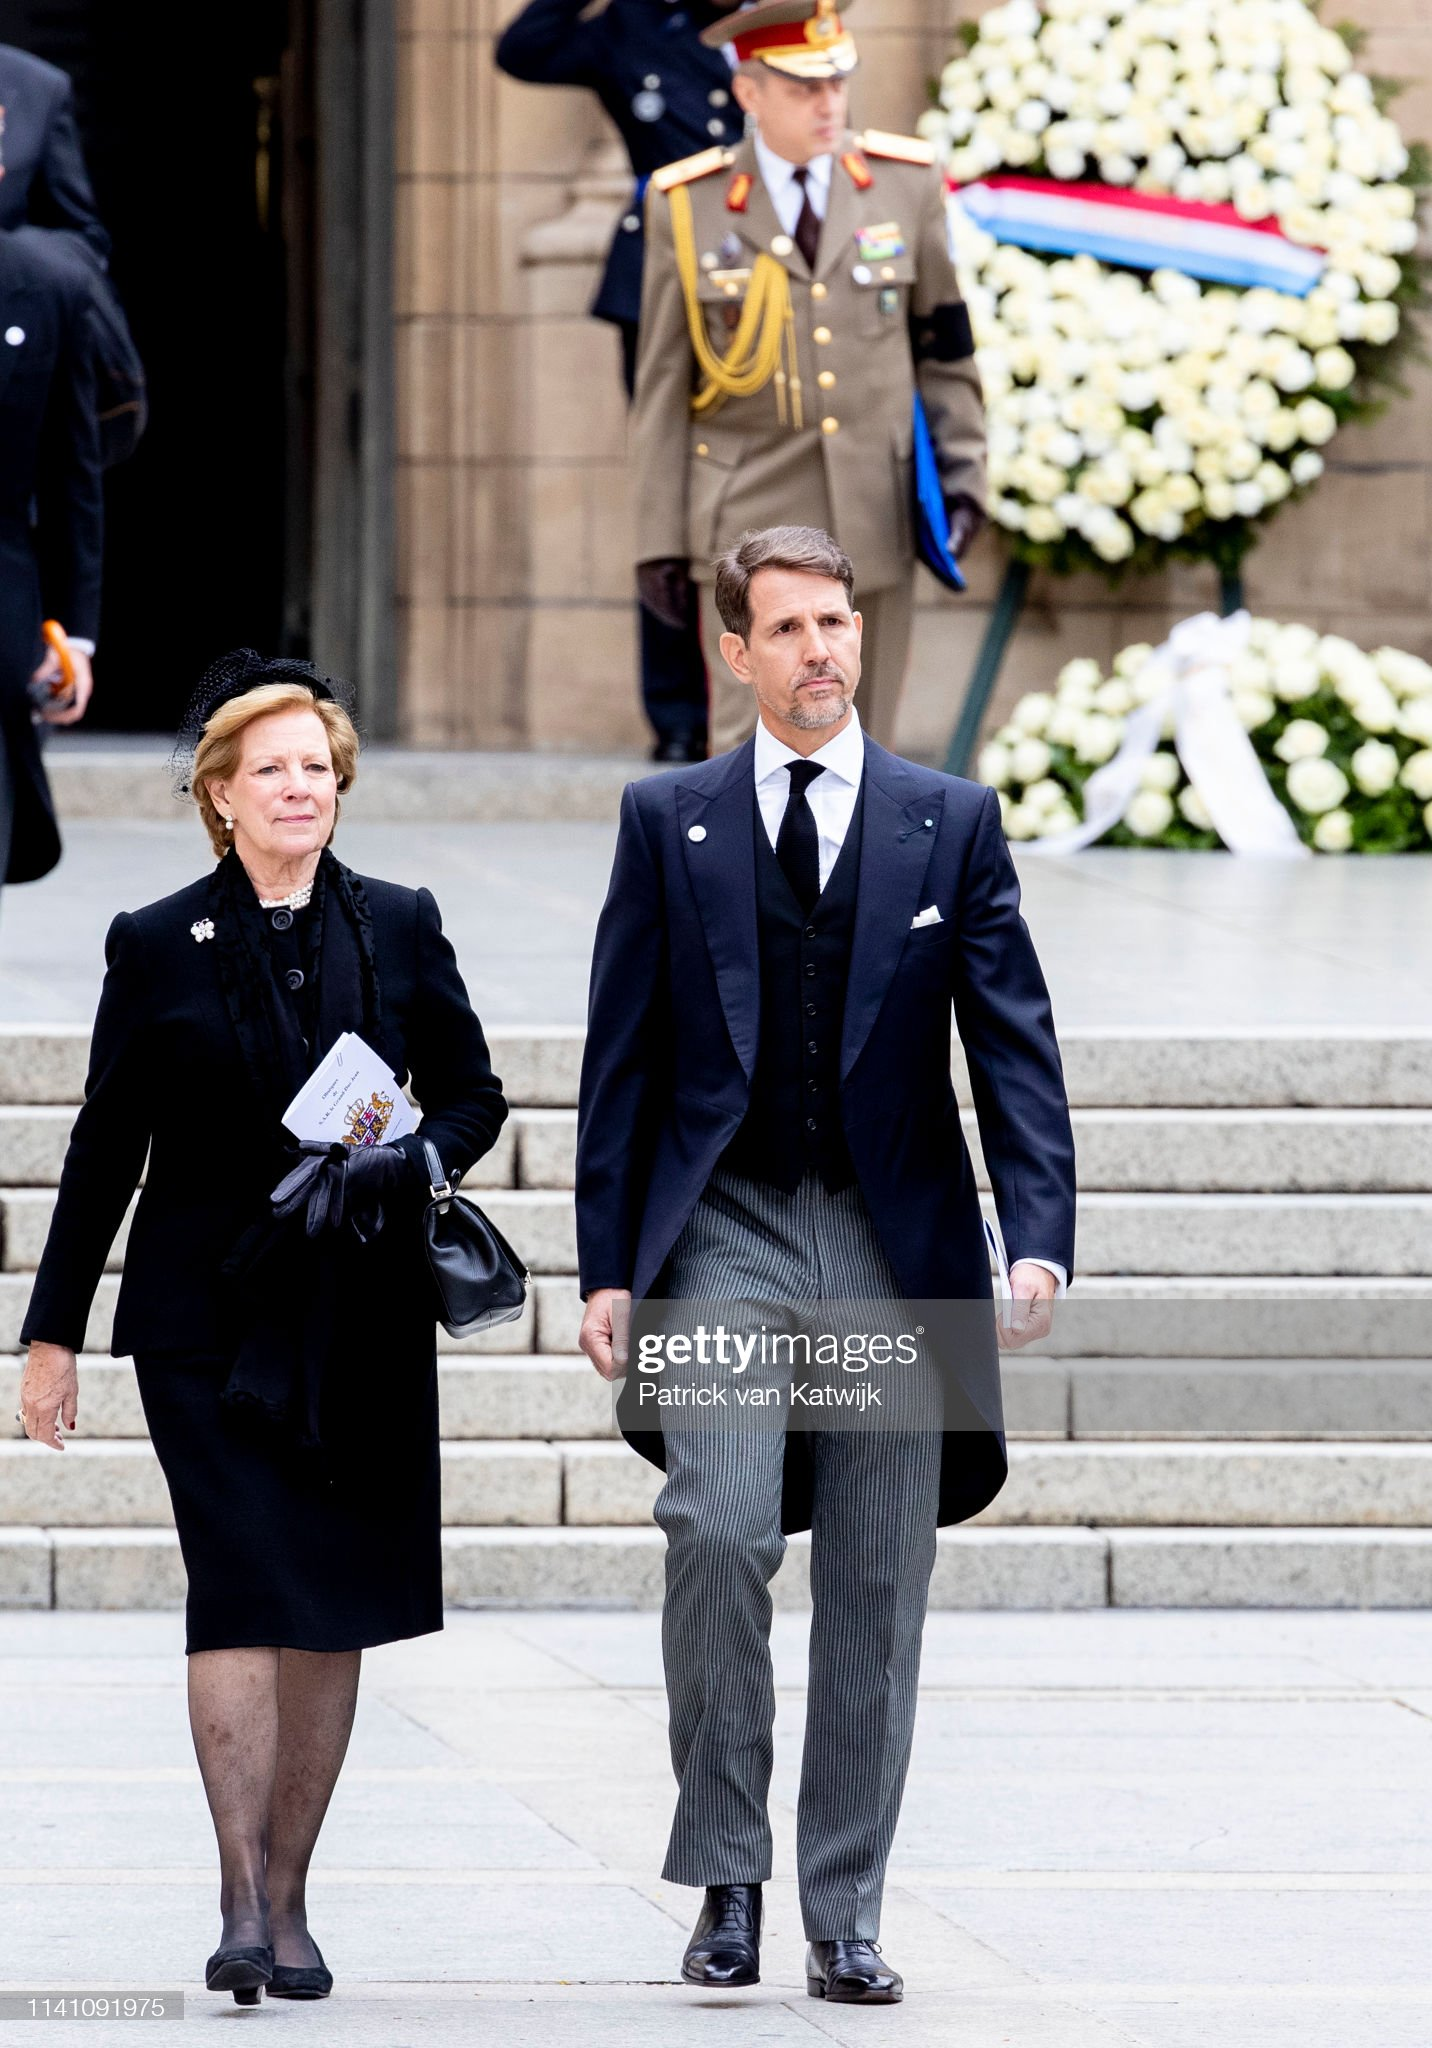 https://media.gettyimages.com/photos/queen-annemarie-of-greece-and-crown-prince-pavlos-of-greece-attend-picture-id1141091975?s=2048x2048